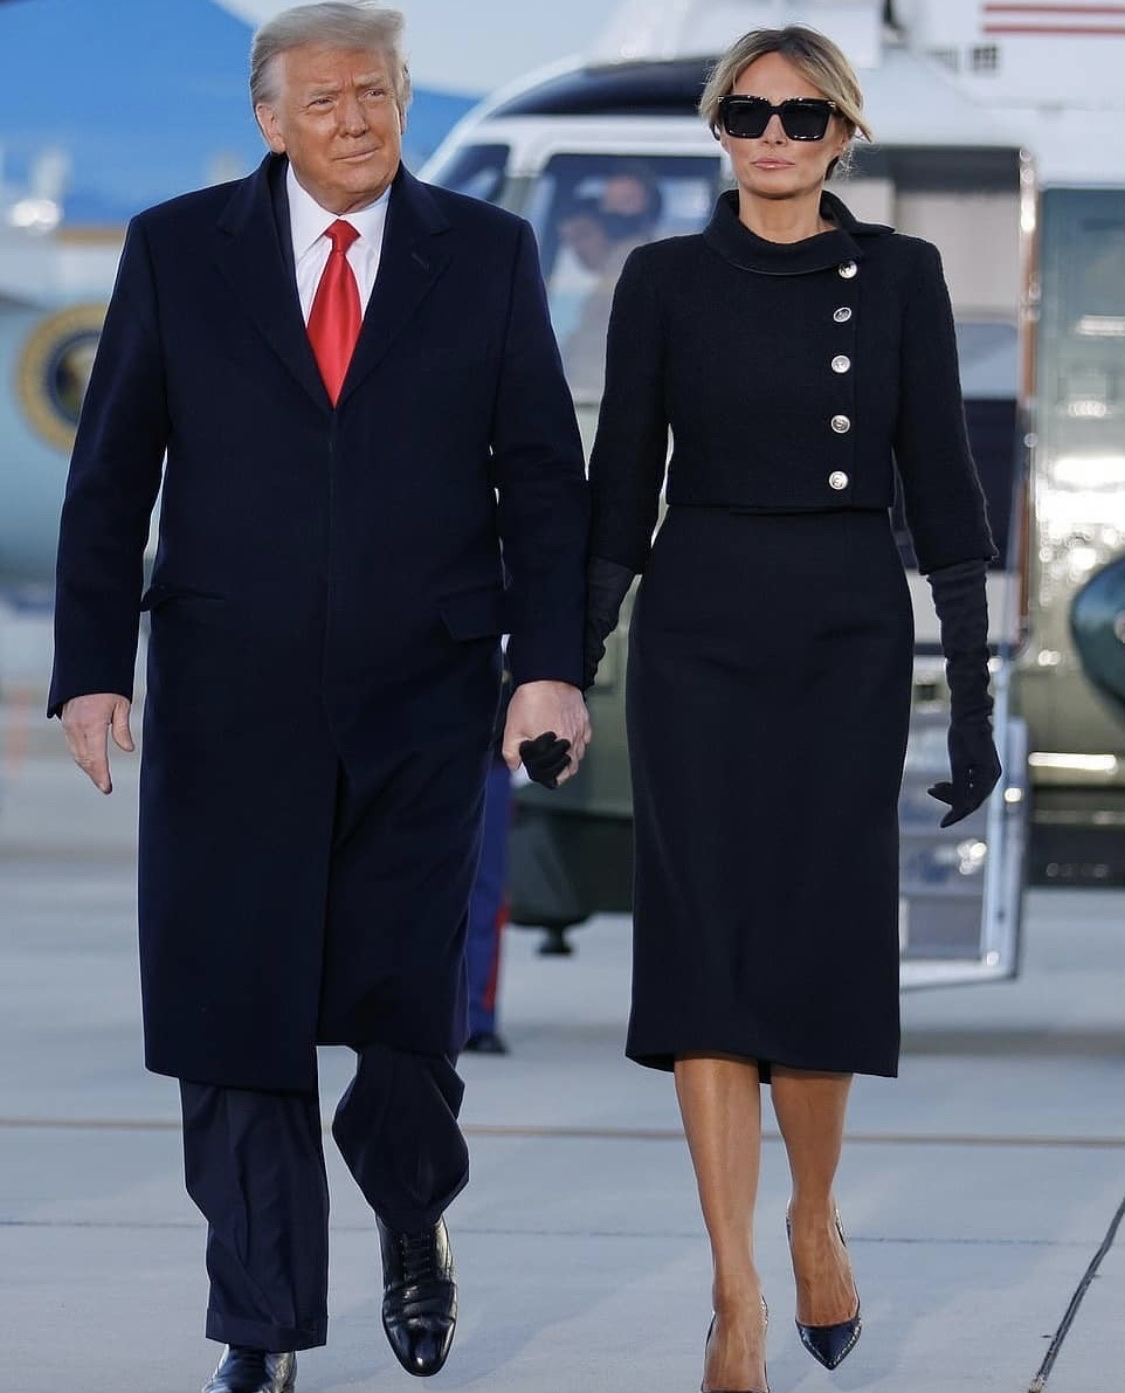 Trump And Melania Leave WhiteHouse In Style